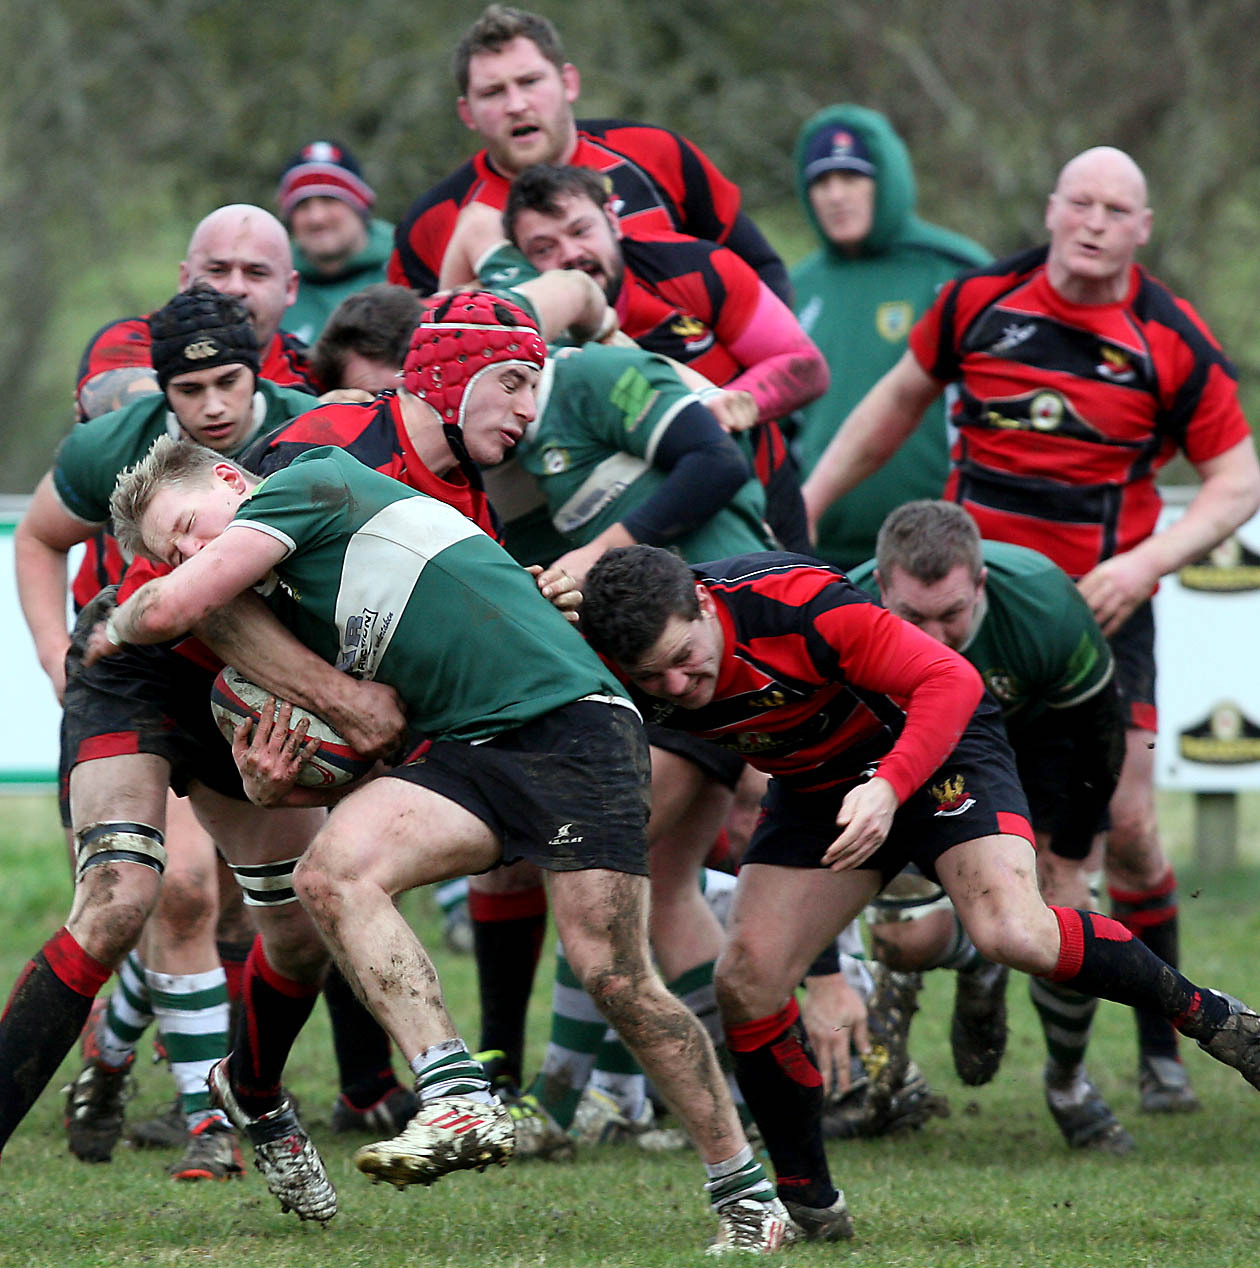 RUGBY: Conditions win out in low-scoring draw at Ciren